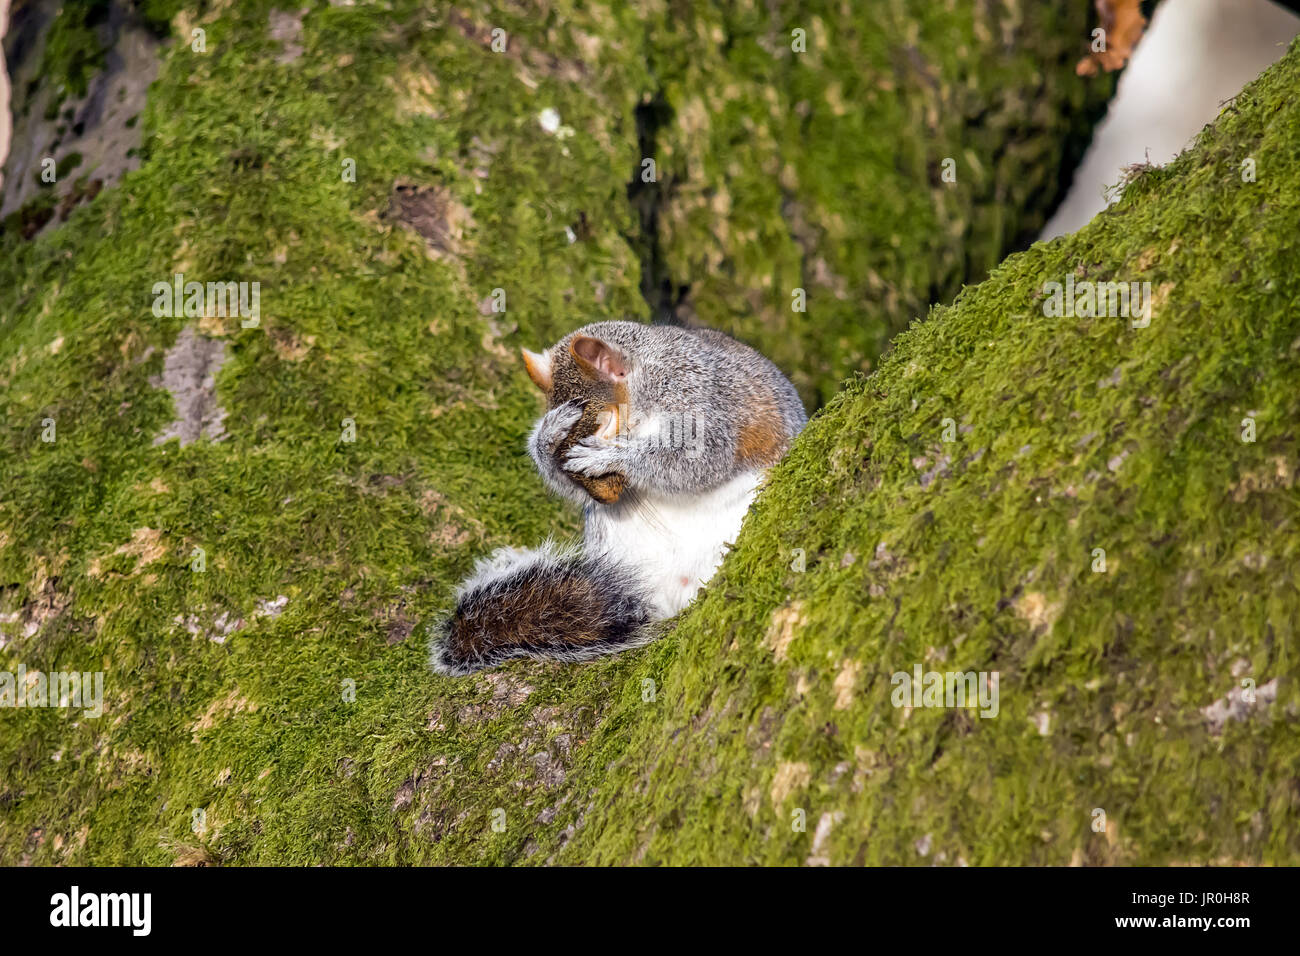 Squirrel sitting on a tree washing his face & whiskers Stock Photo